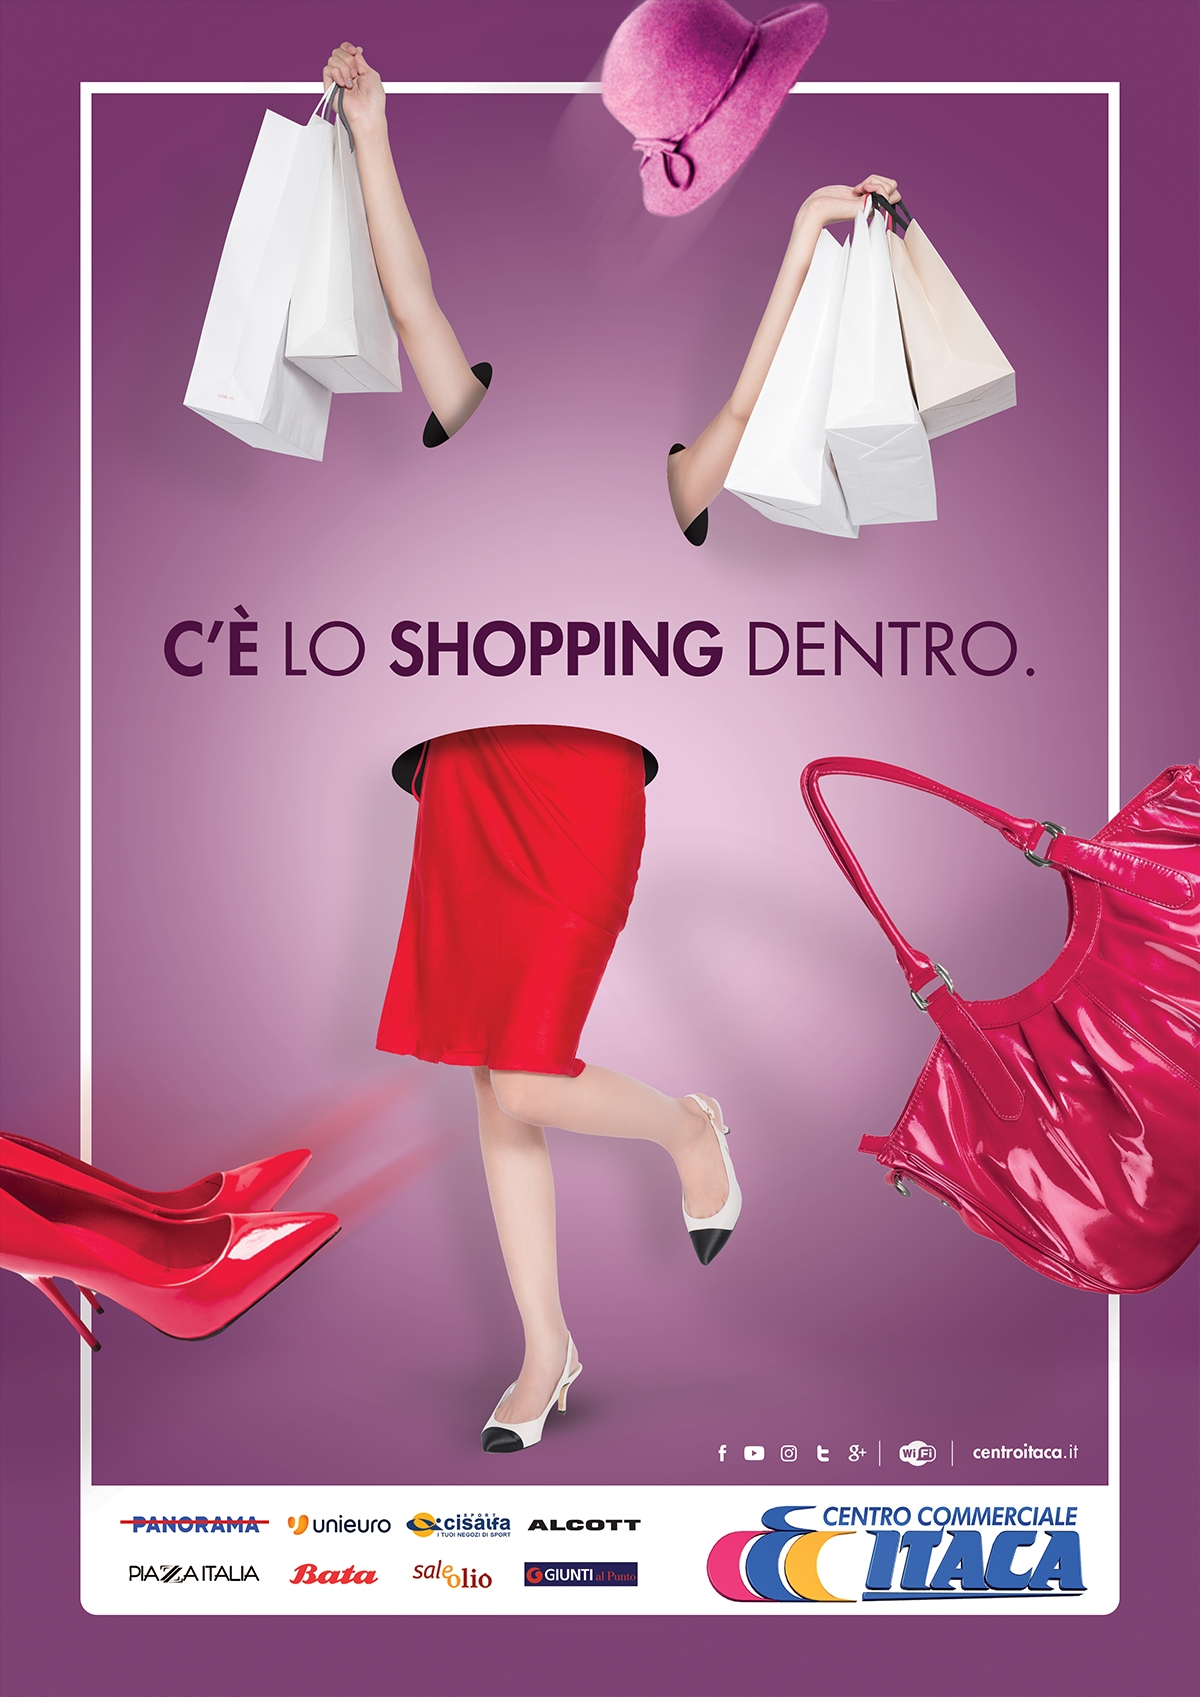 C'E' LO SHOPPING DENTRO